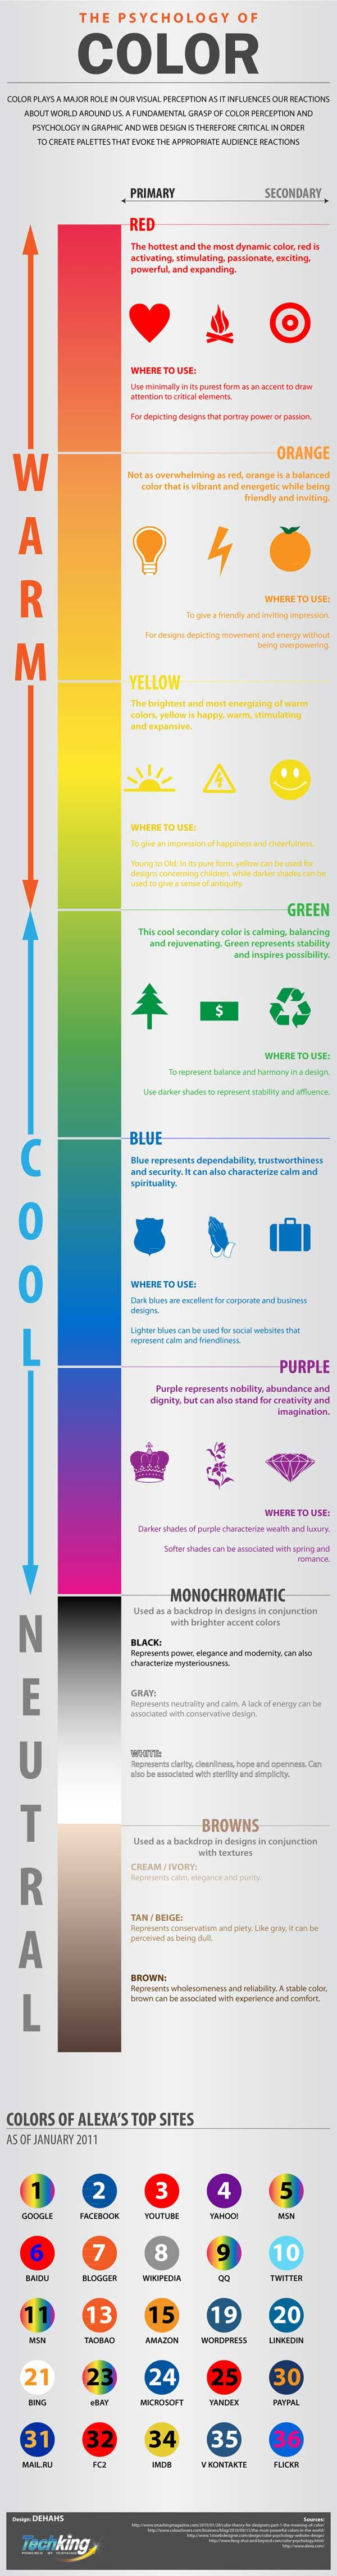 19 best color theory psychology use images on pinterest charts the psycology of color nvjuhfo Images